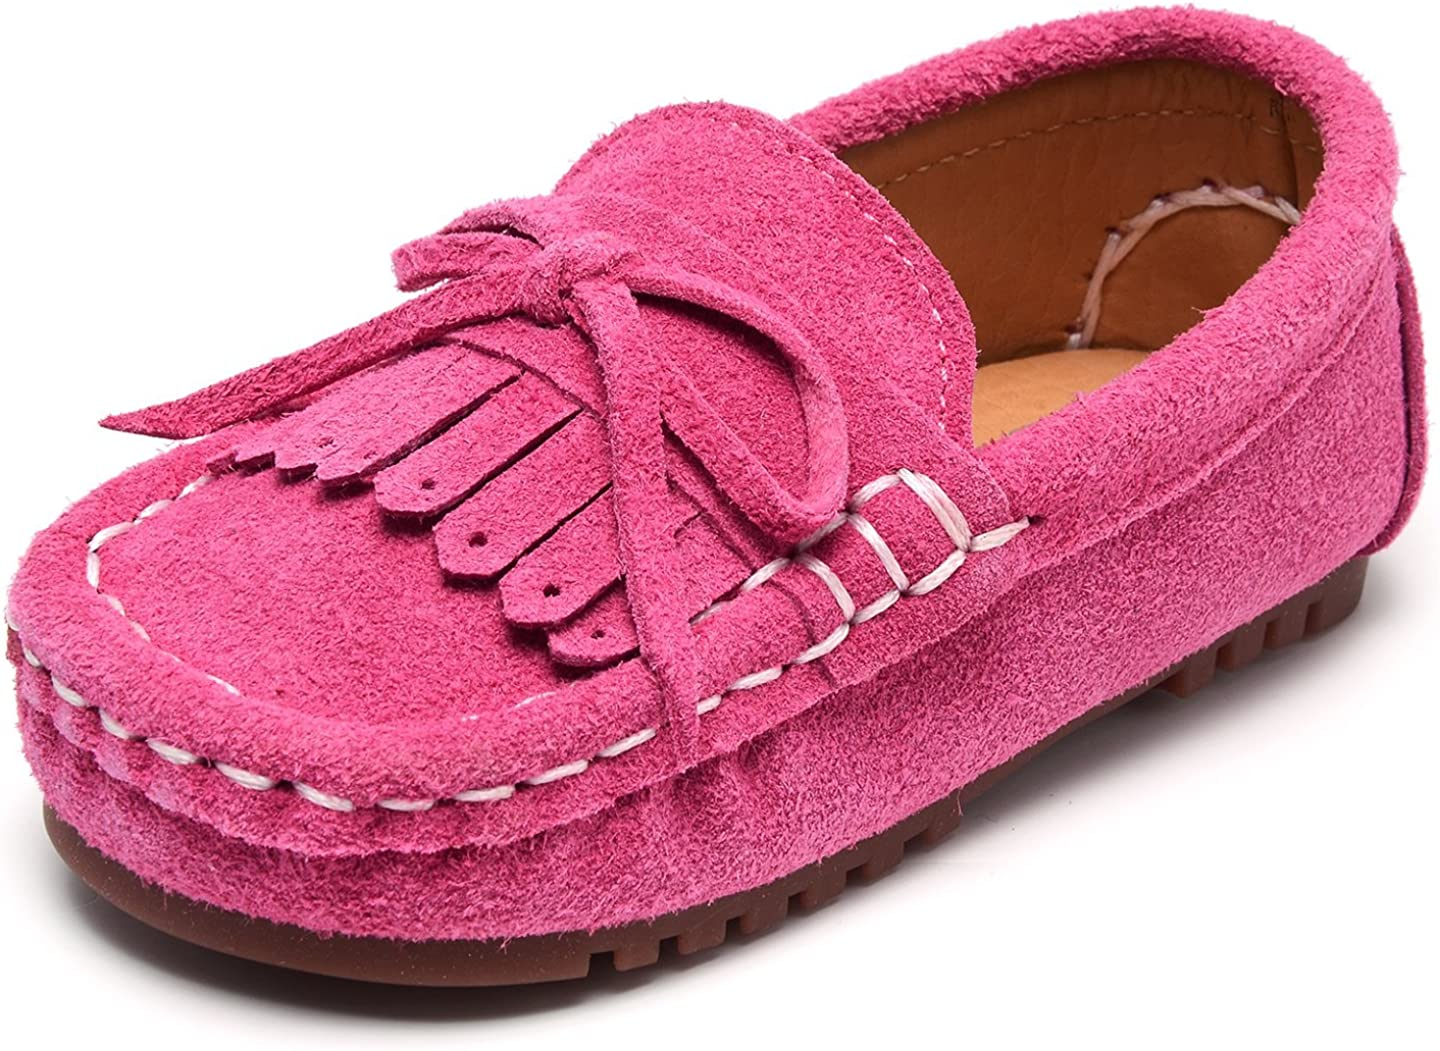 UBELLA Boys Girls Suede Leather Slip-on Loafers Kids Boat Dress Shoes Flats